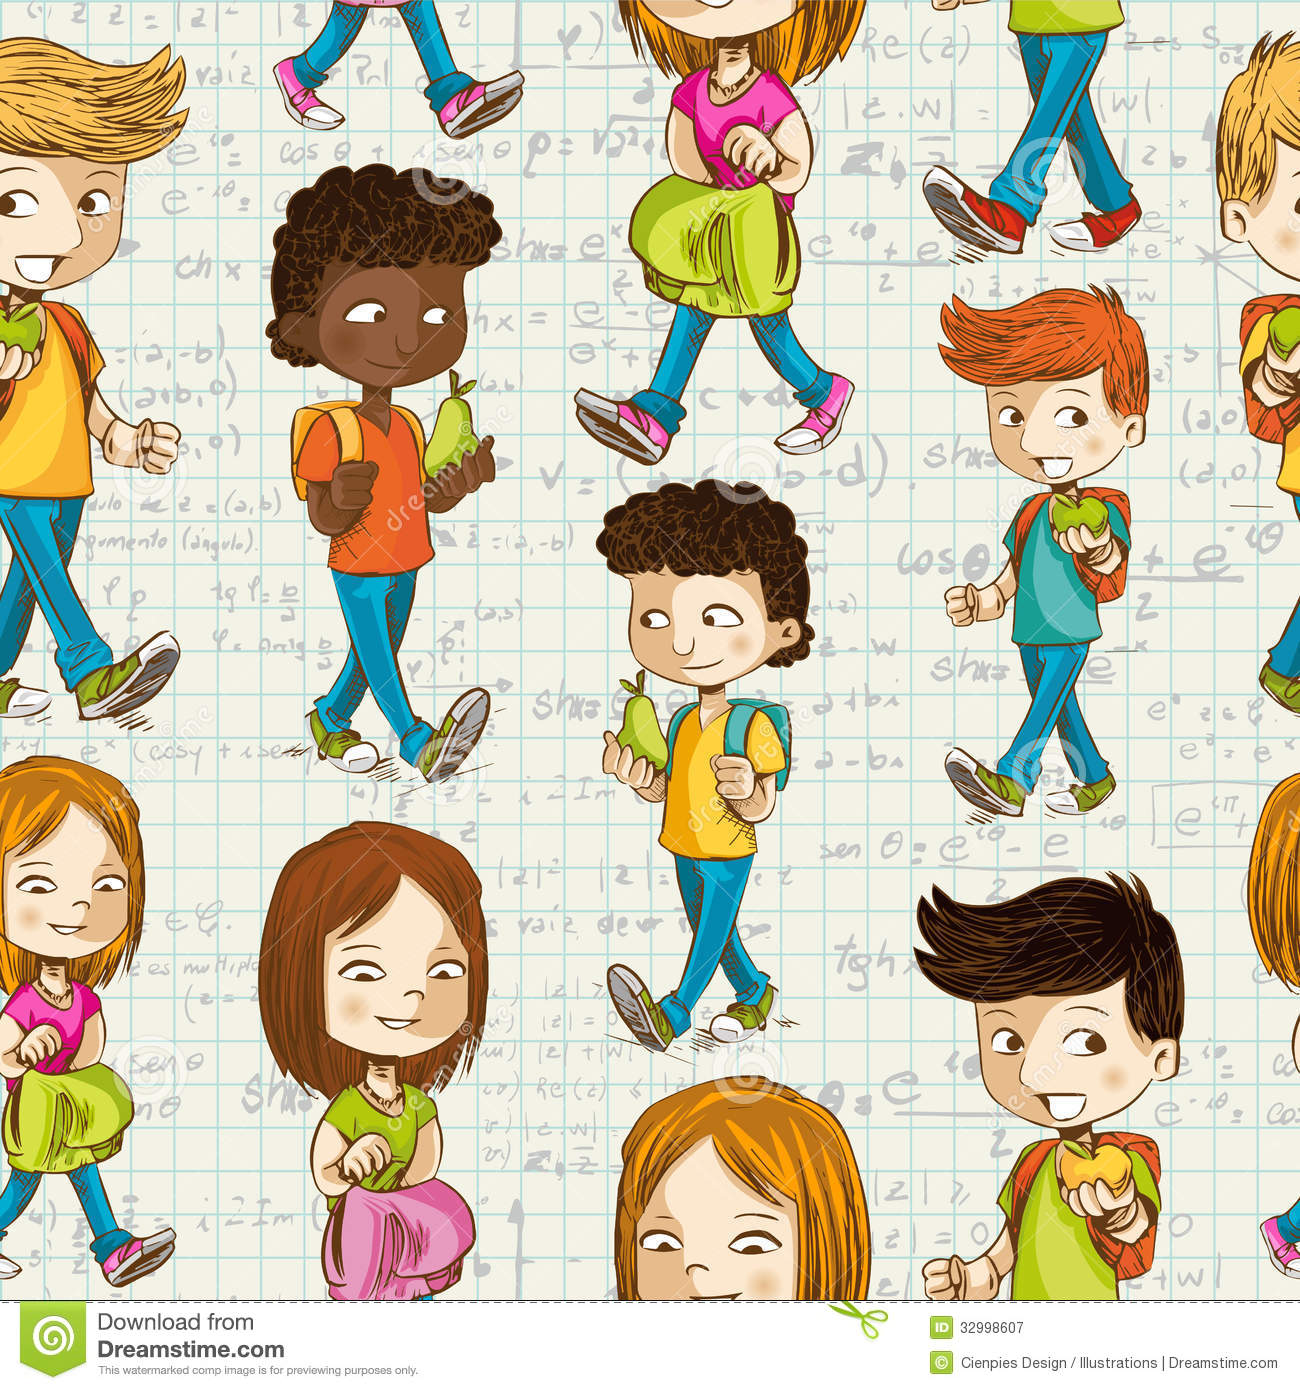 HD wallpapers 1st day of school worksheets